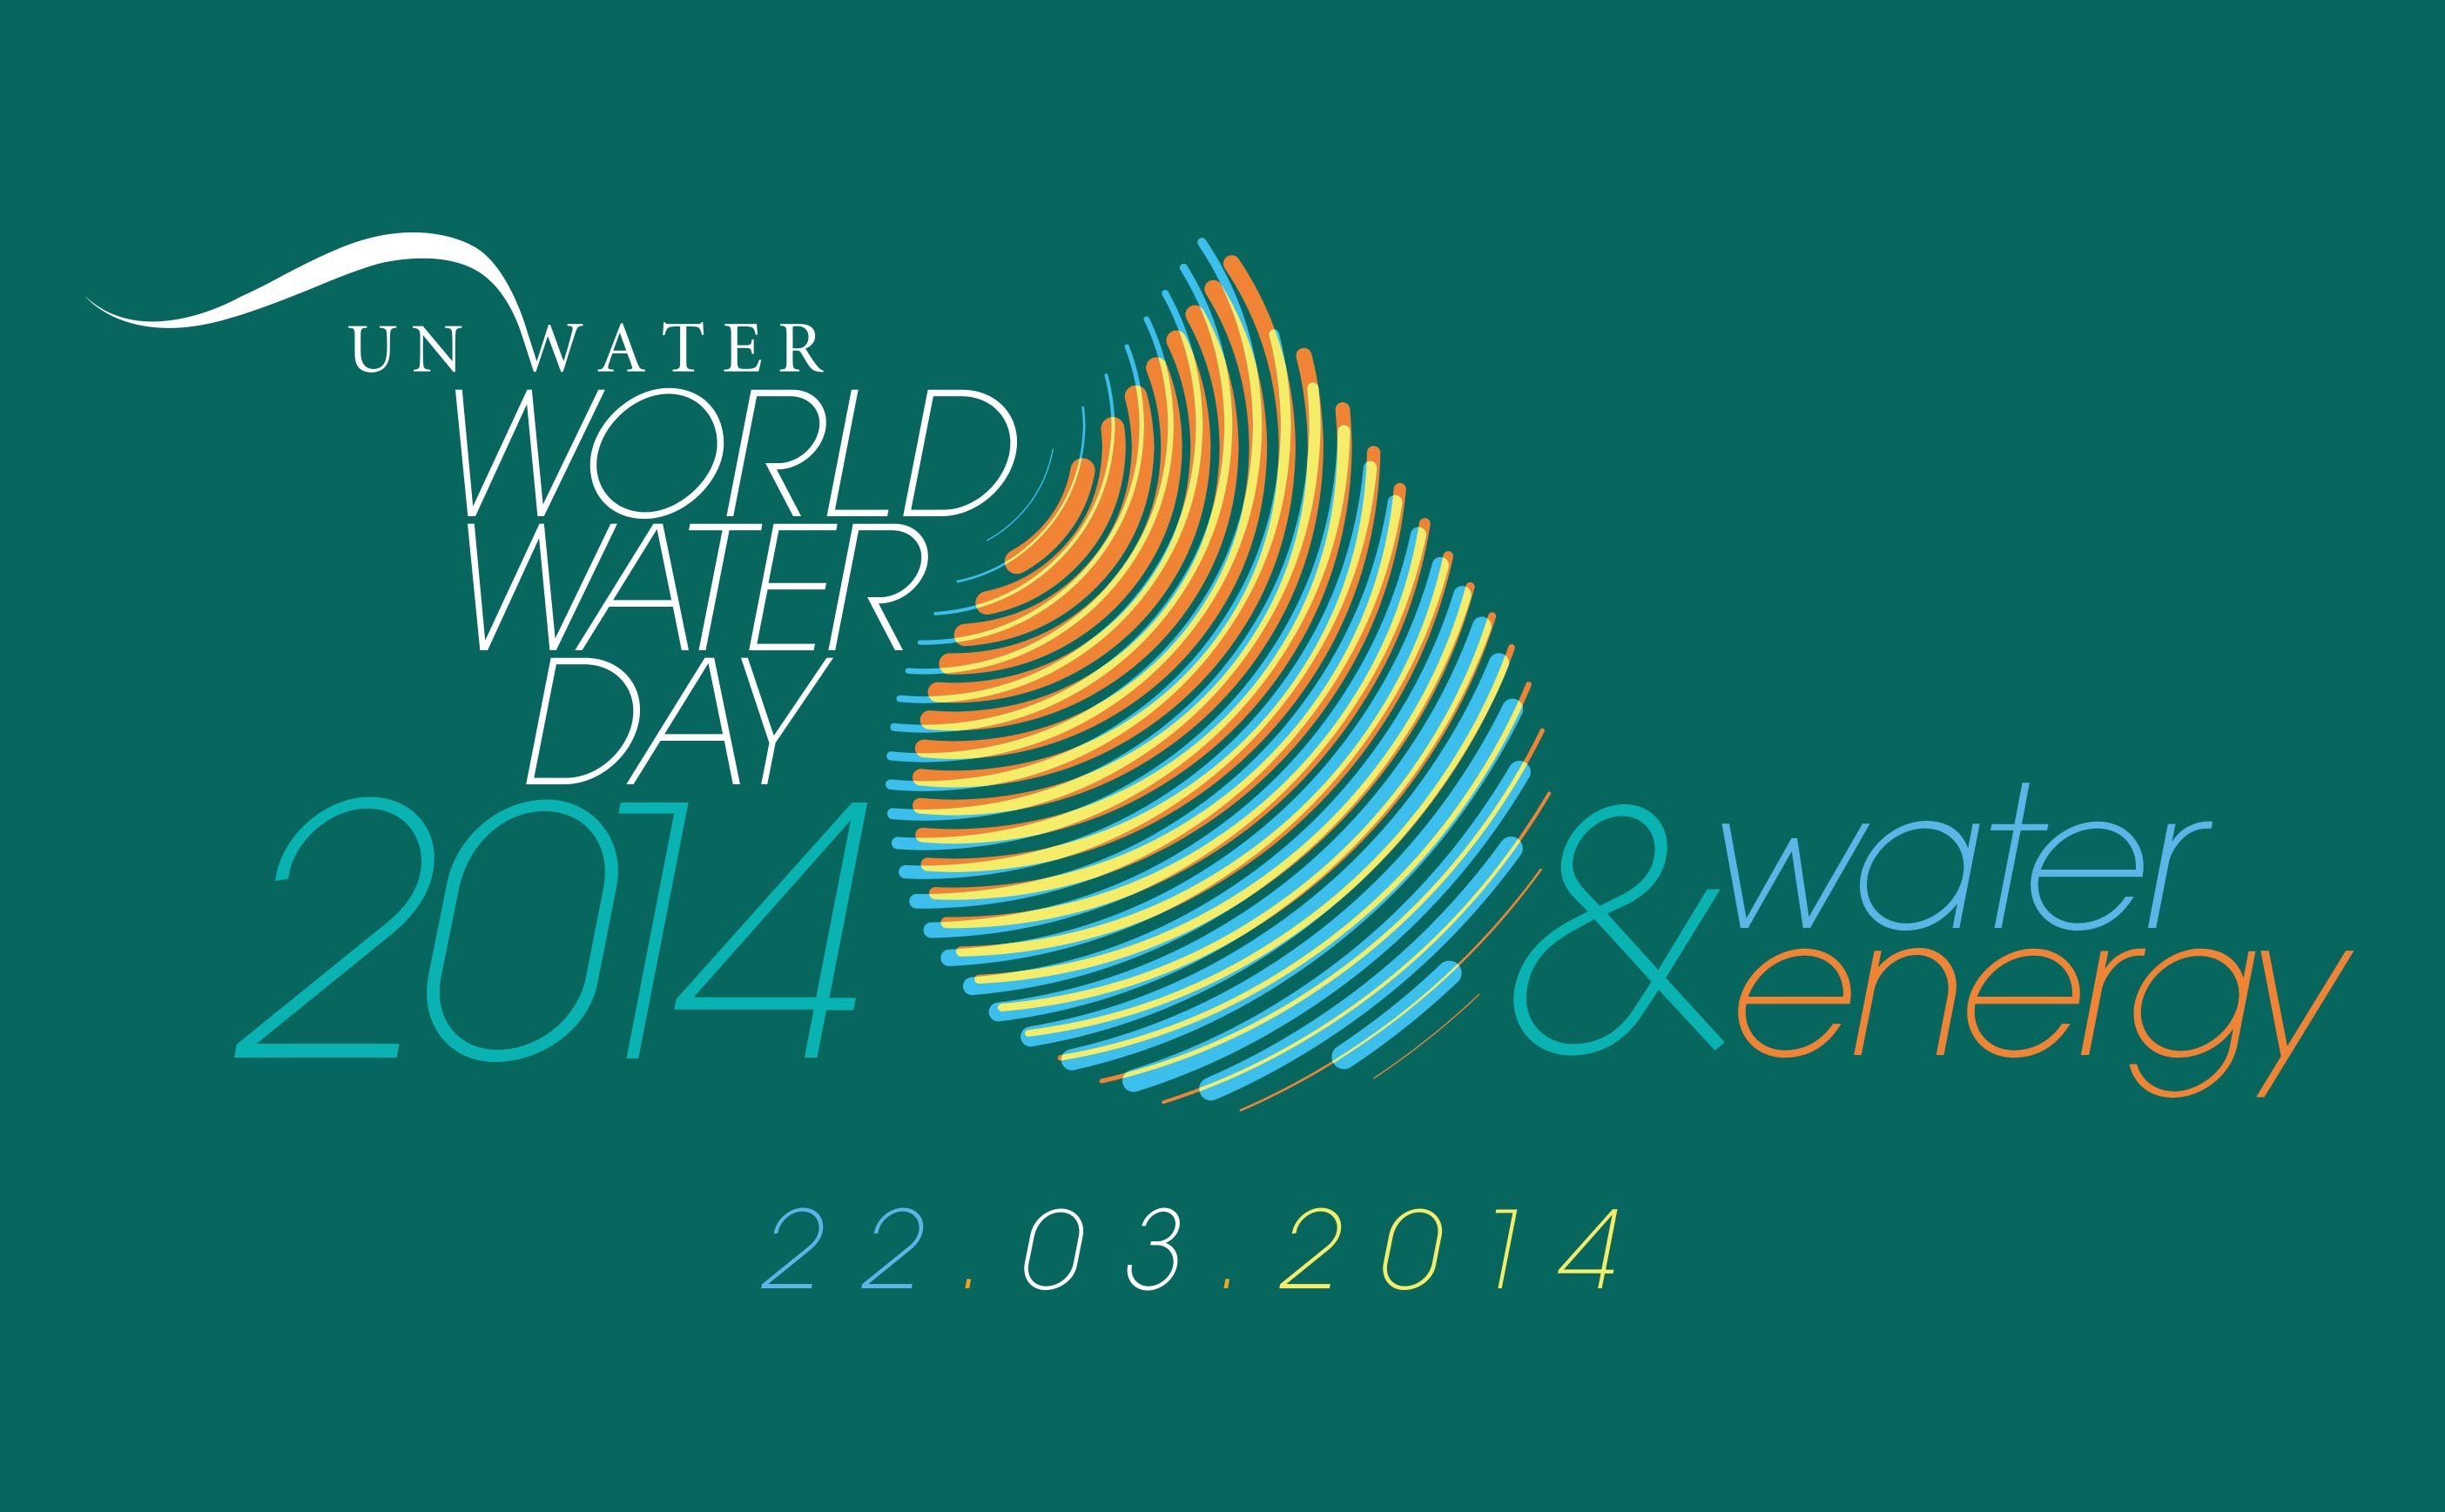 world water day 2014.jpg